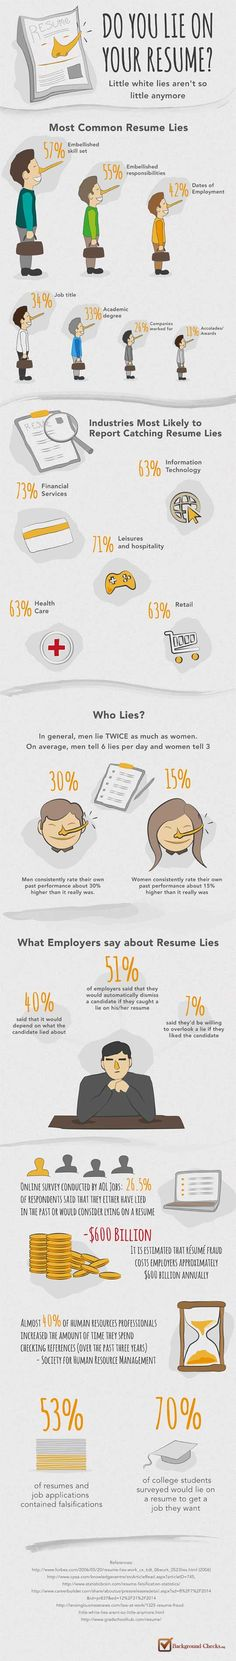 The 10 Reasons I Ignored Your Resume - tips for resumes